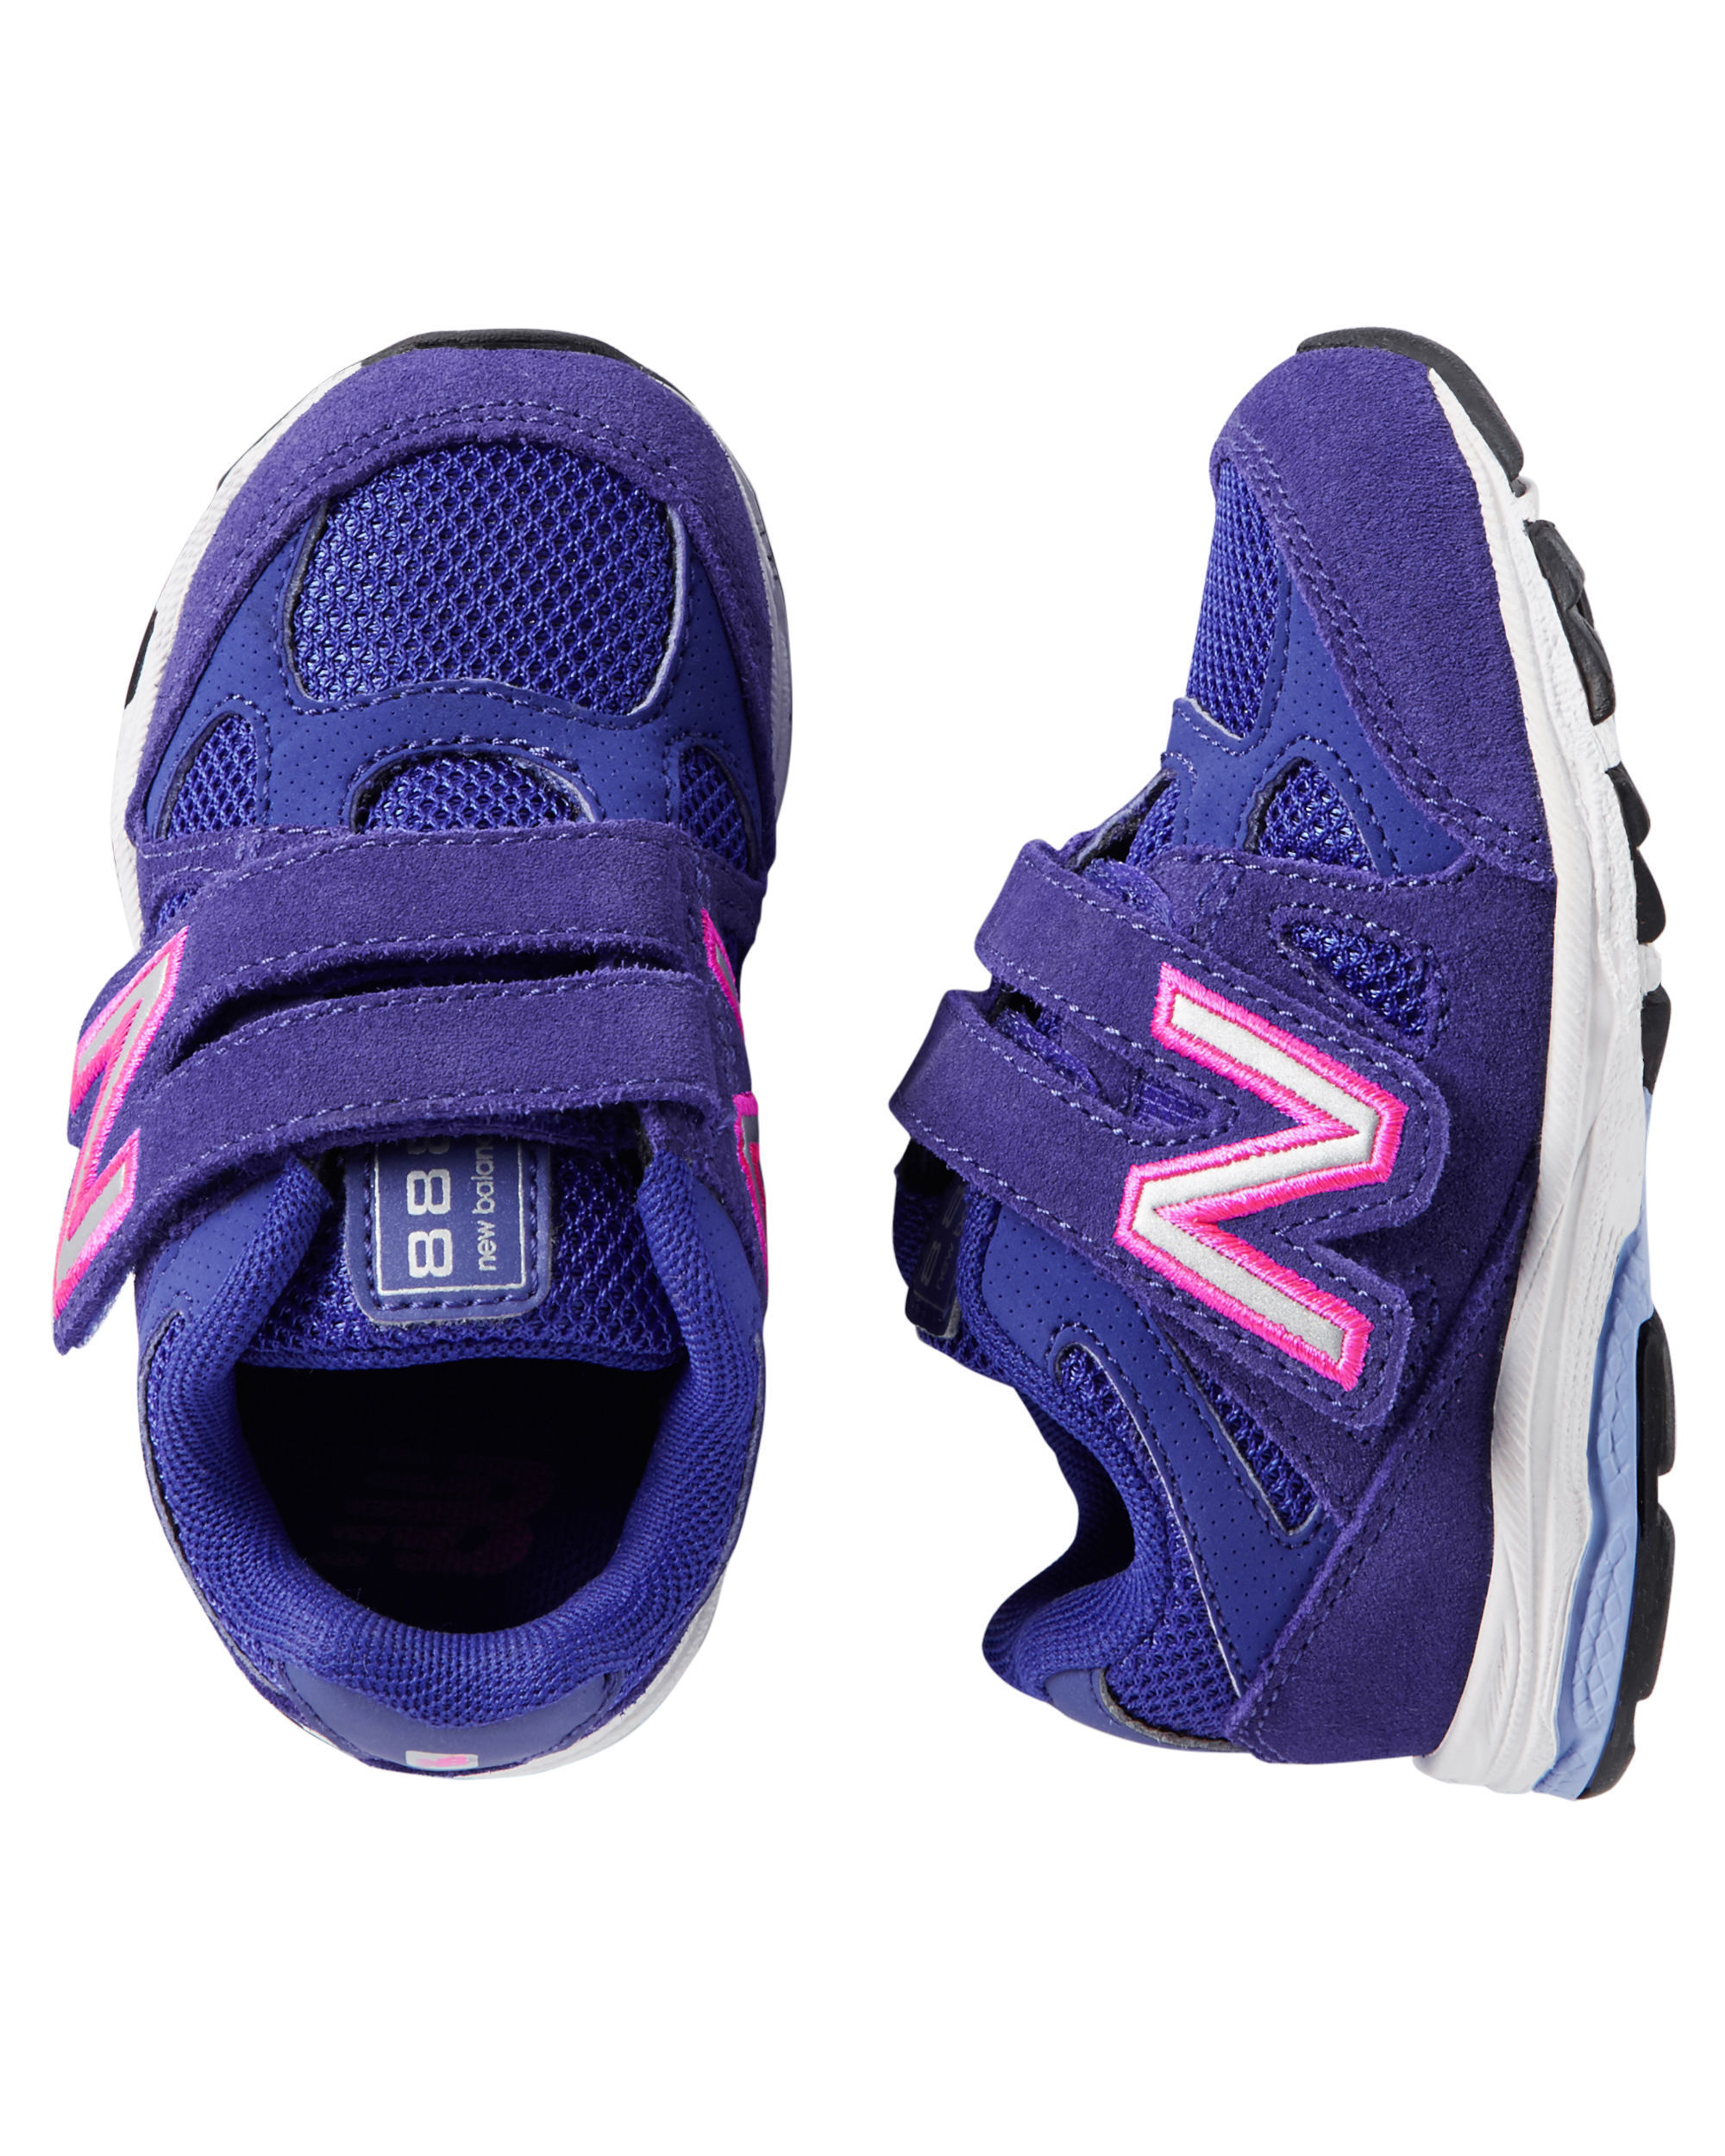 ◎送料込み◎New Balance Hook & Loop 888 Sneakers